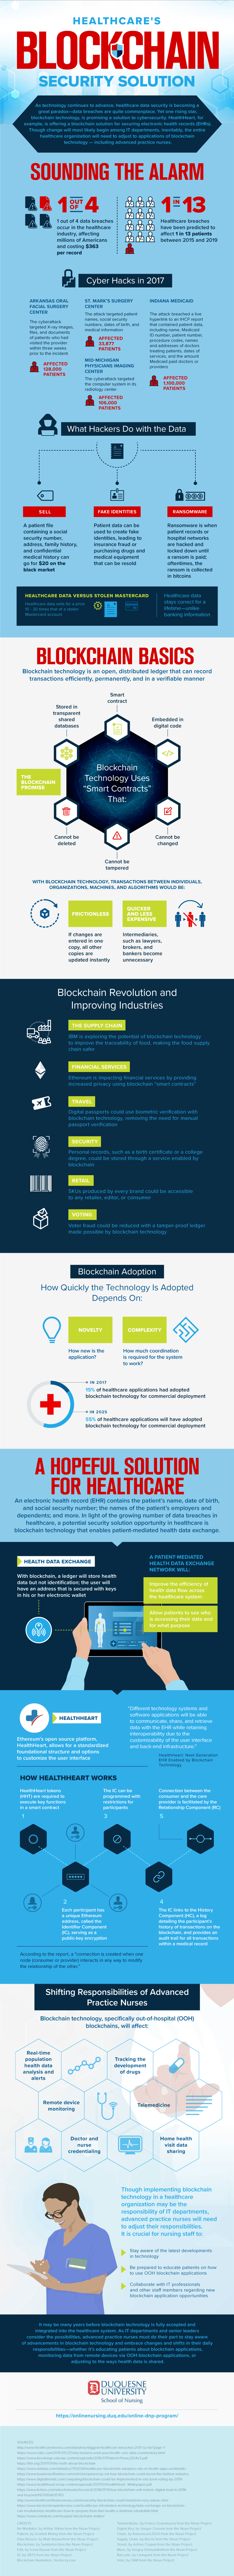 How blockchain technology-based solutions can help healthcare organizations improve online security from cyberattacks.